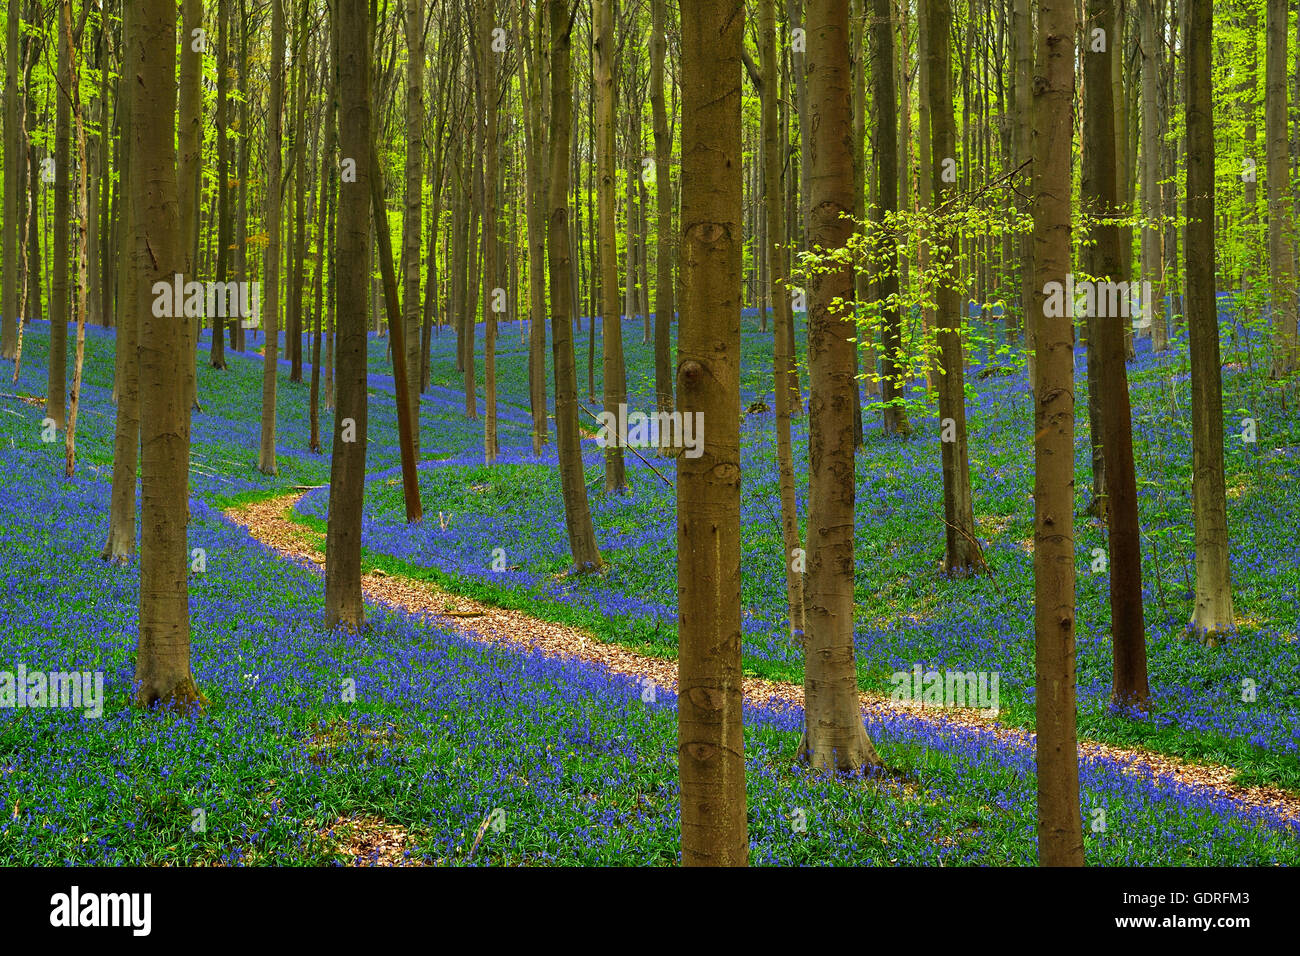 Path through forest, European beech (Fagus sylvatica), bluebells (Hyacinthoides), Hallerbos, Vlaams Brabant, Belgium - Stock Image